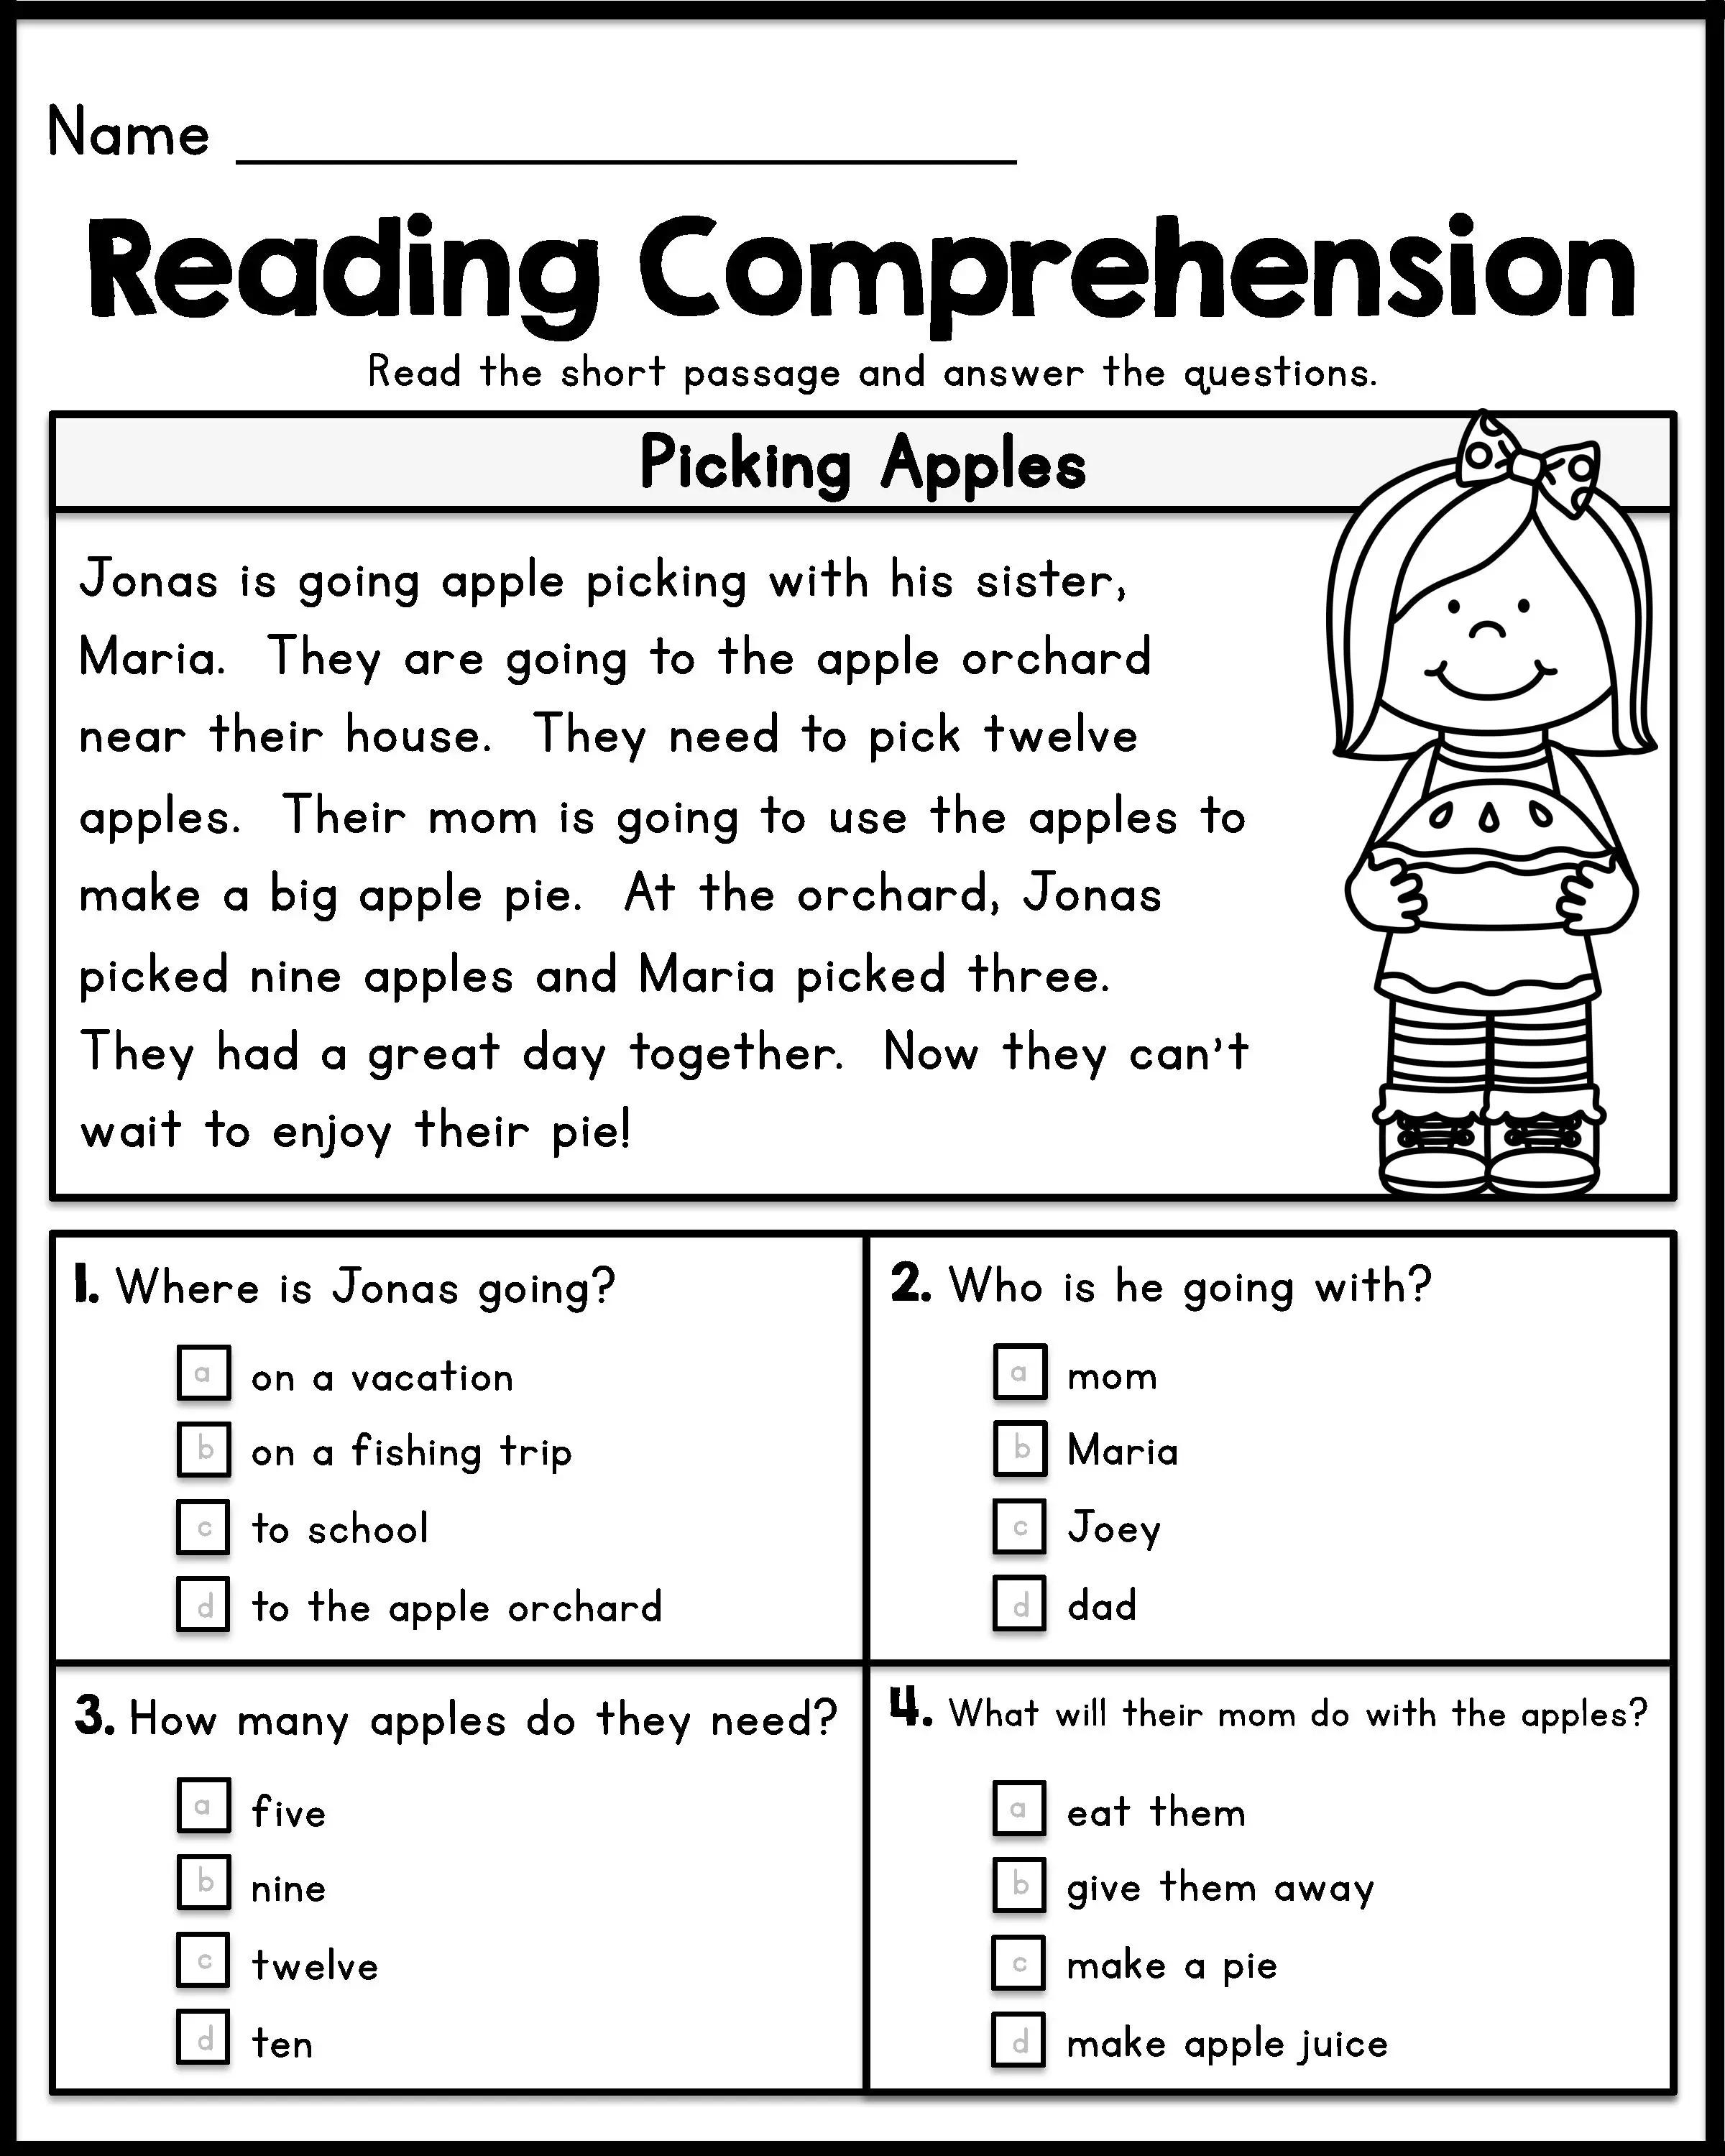 12 Good Examples Of 1st Grade Worksheets Free Download ...